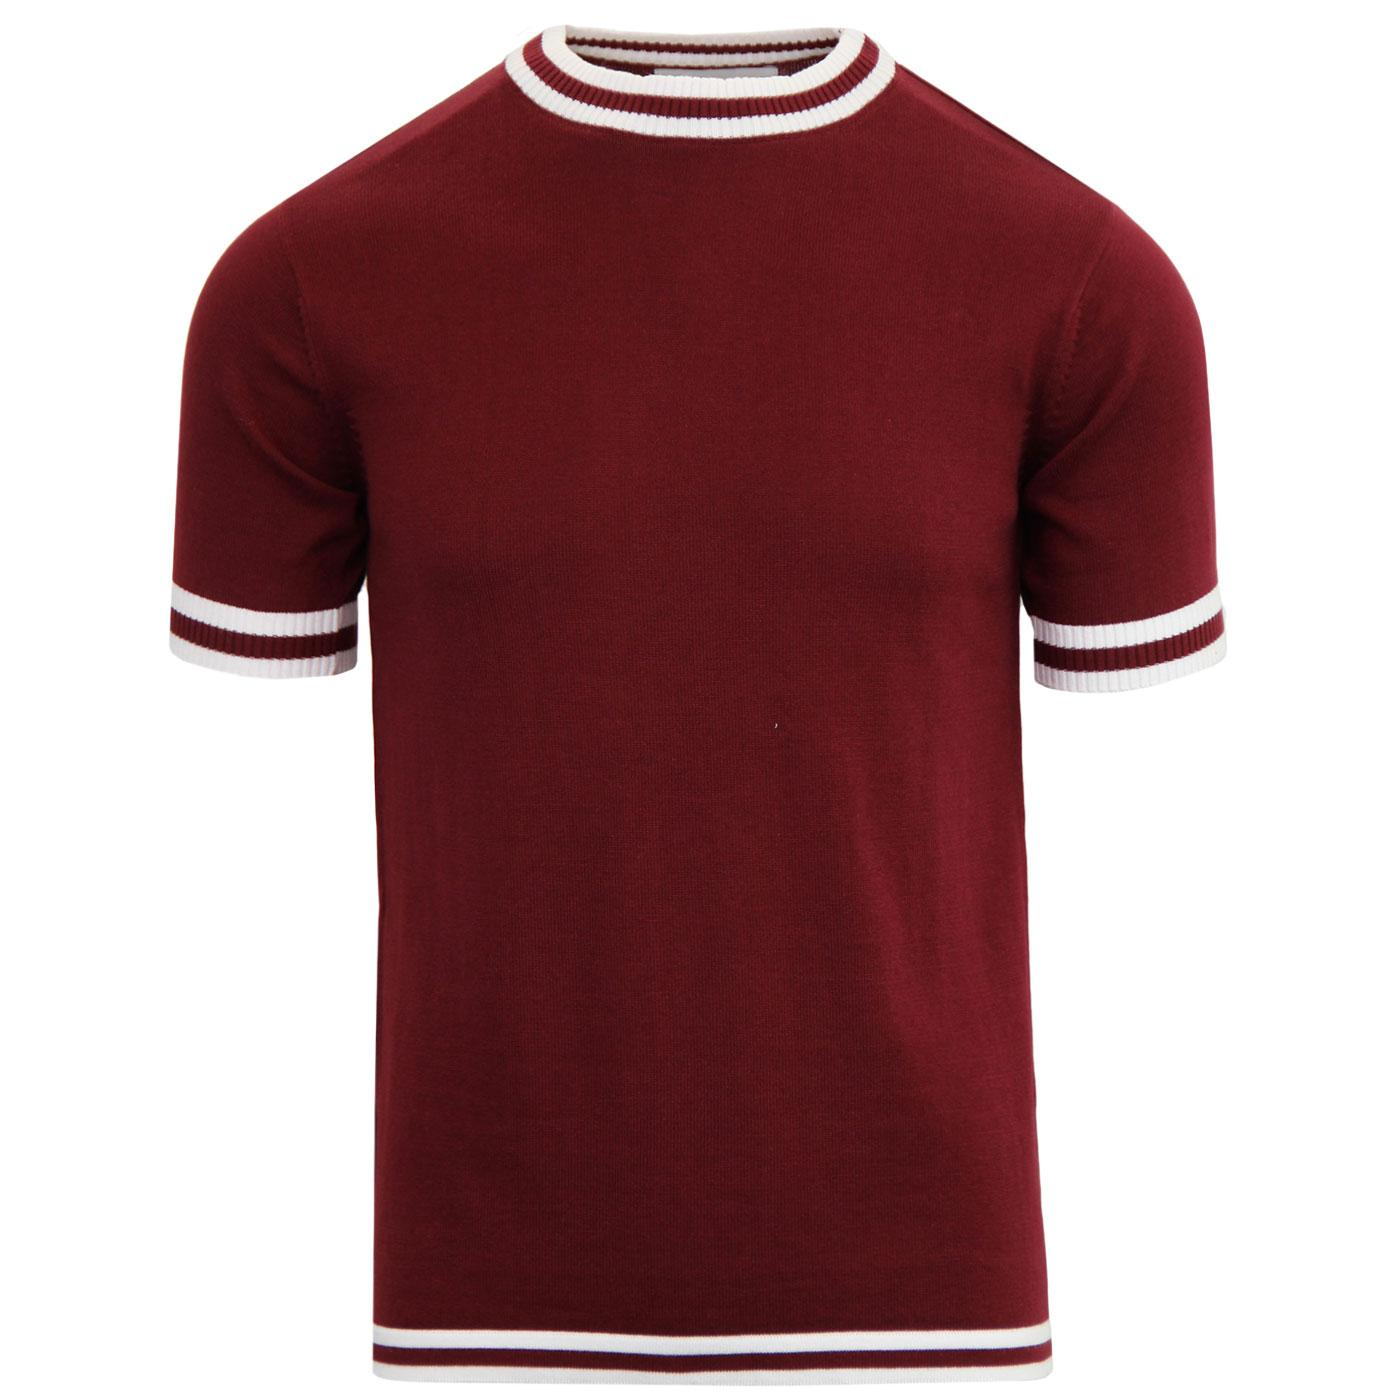 Moon MADCAP ENGLAND Mod Tipped Knit Tee ZINFANDEL